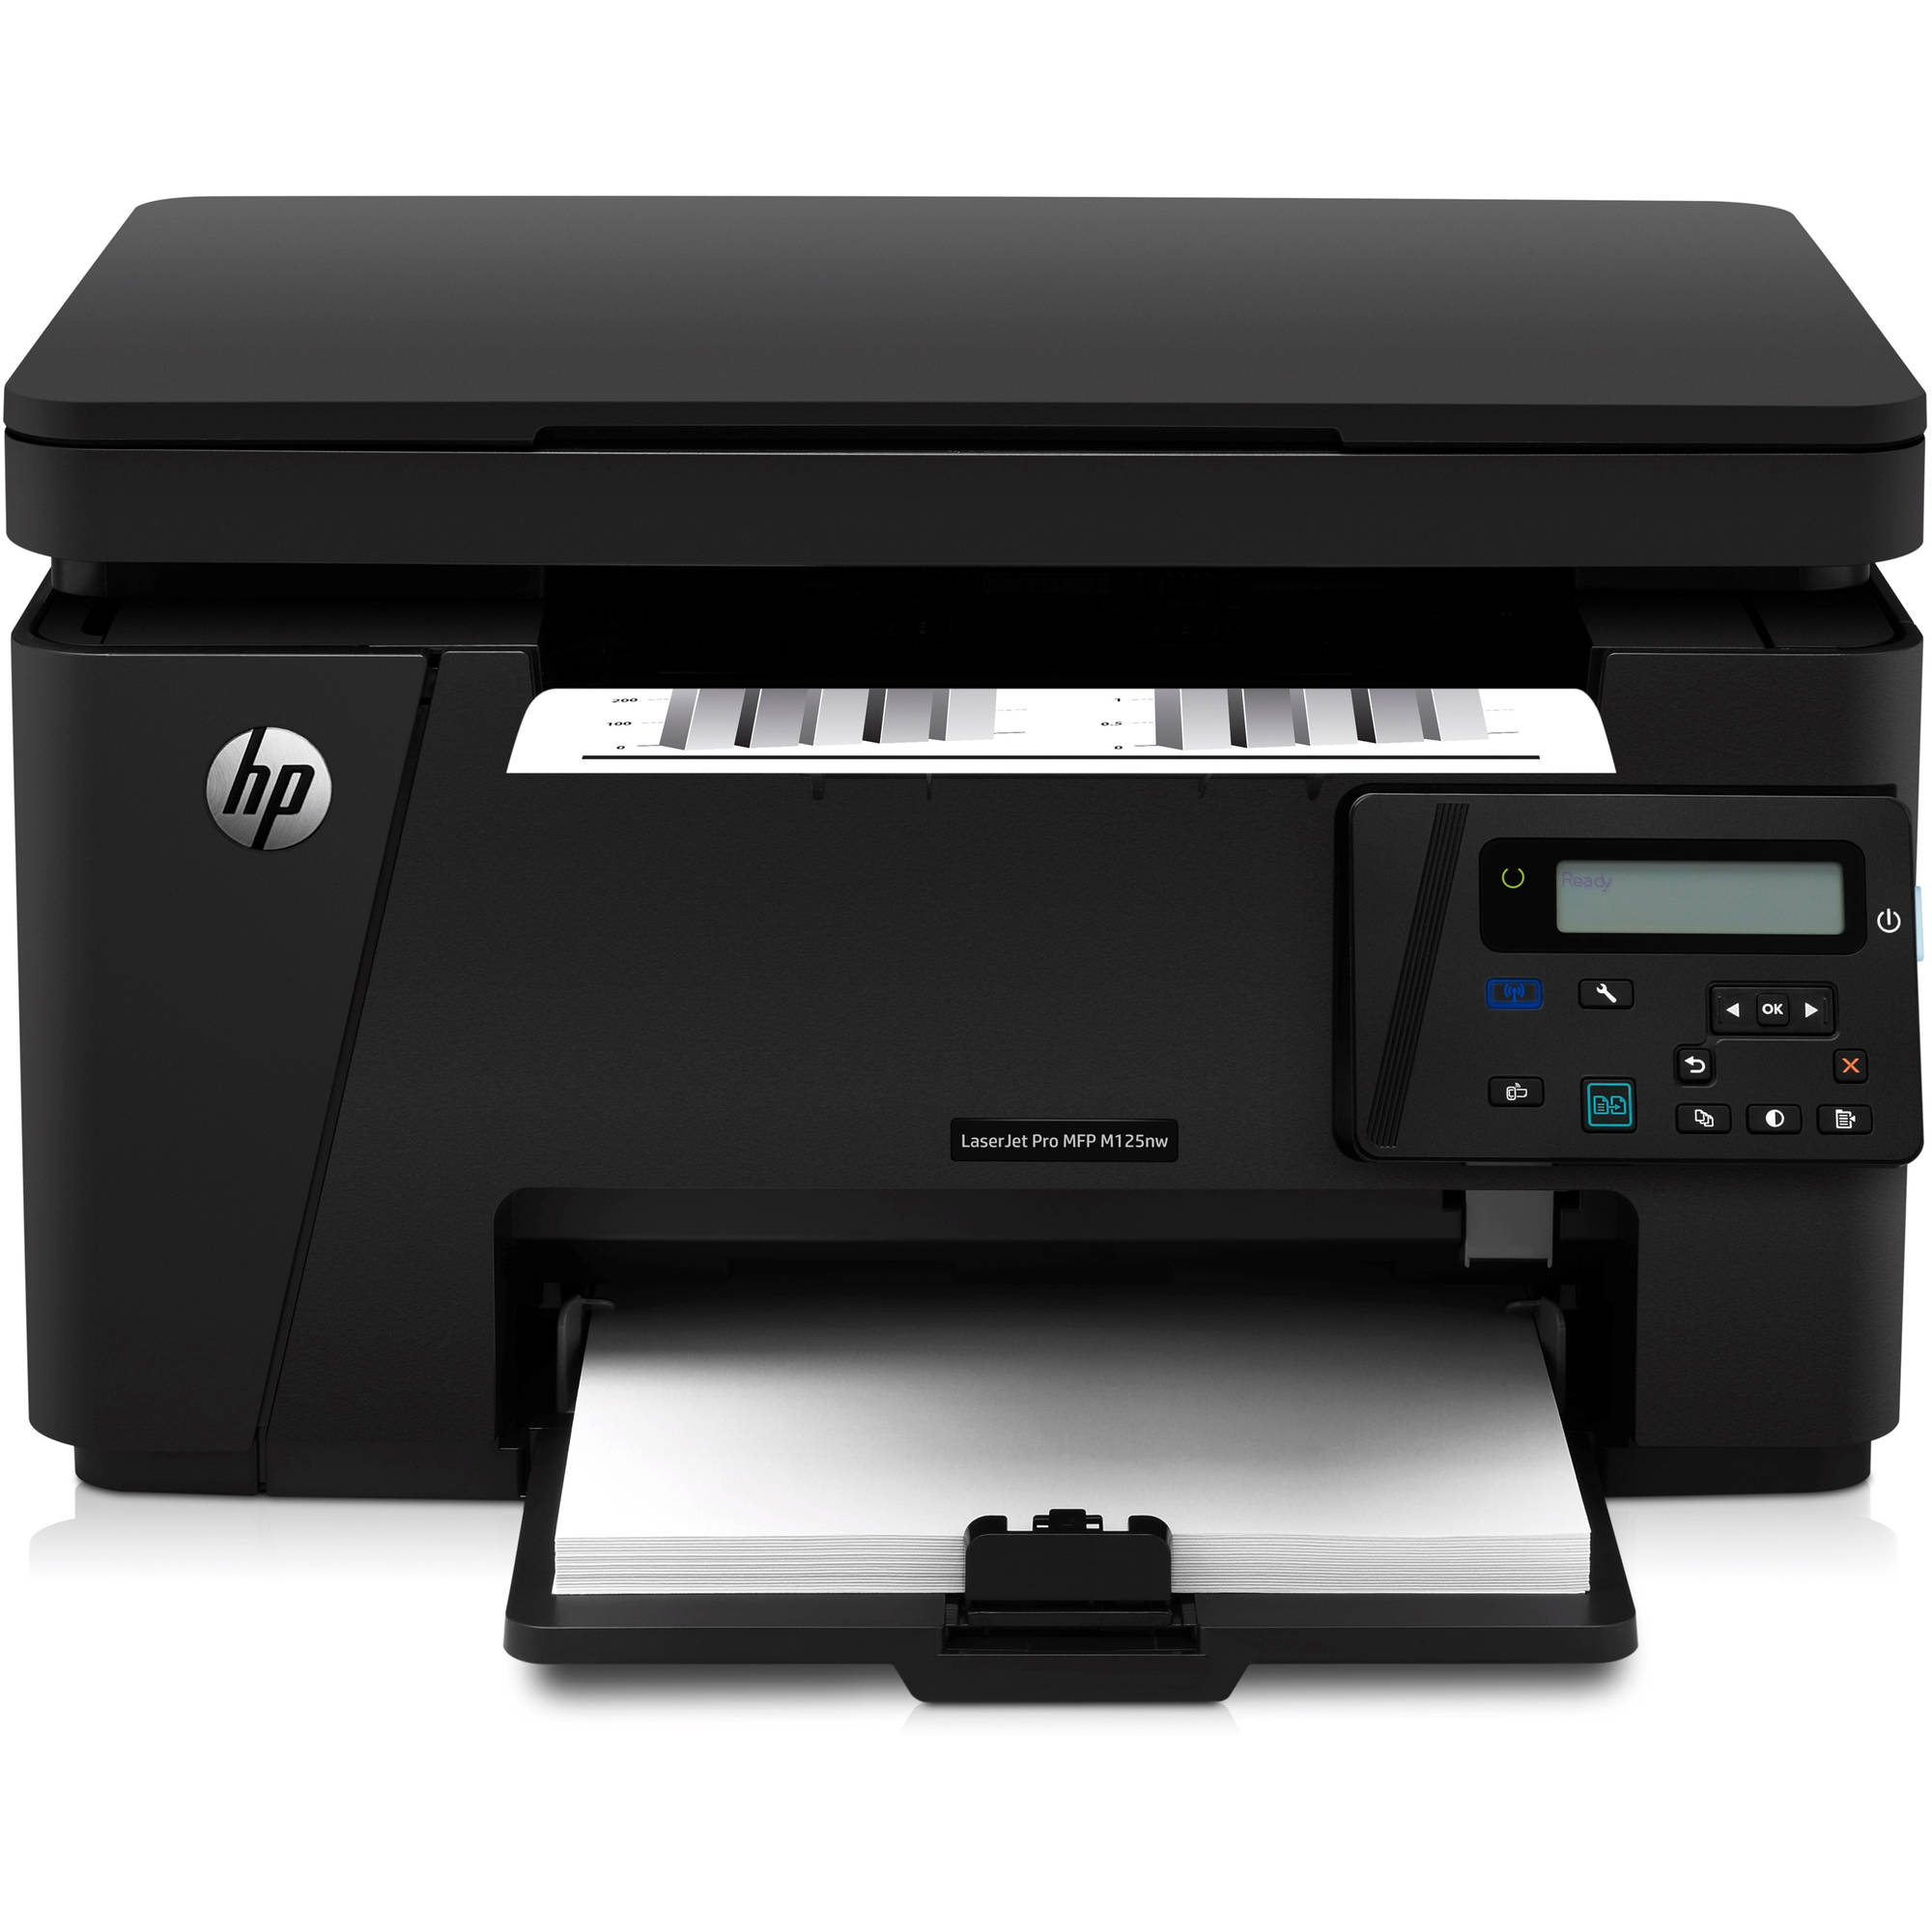 HP LaserJet Pro MFP M125nw Multifunction Printer/Copier/Scanner